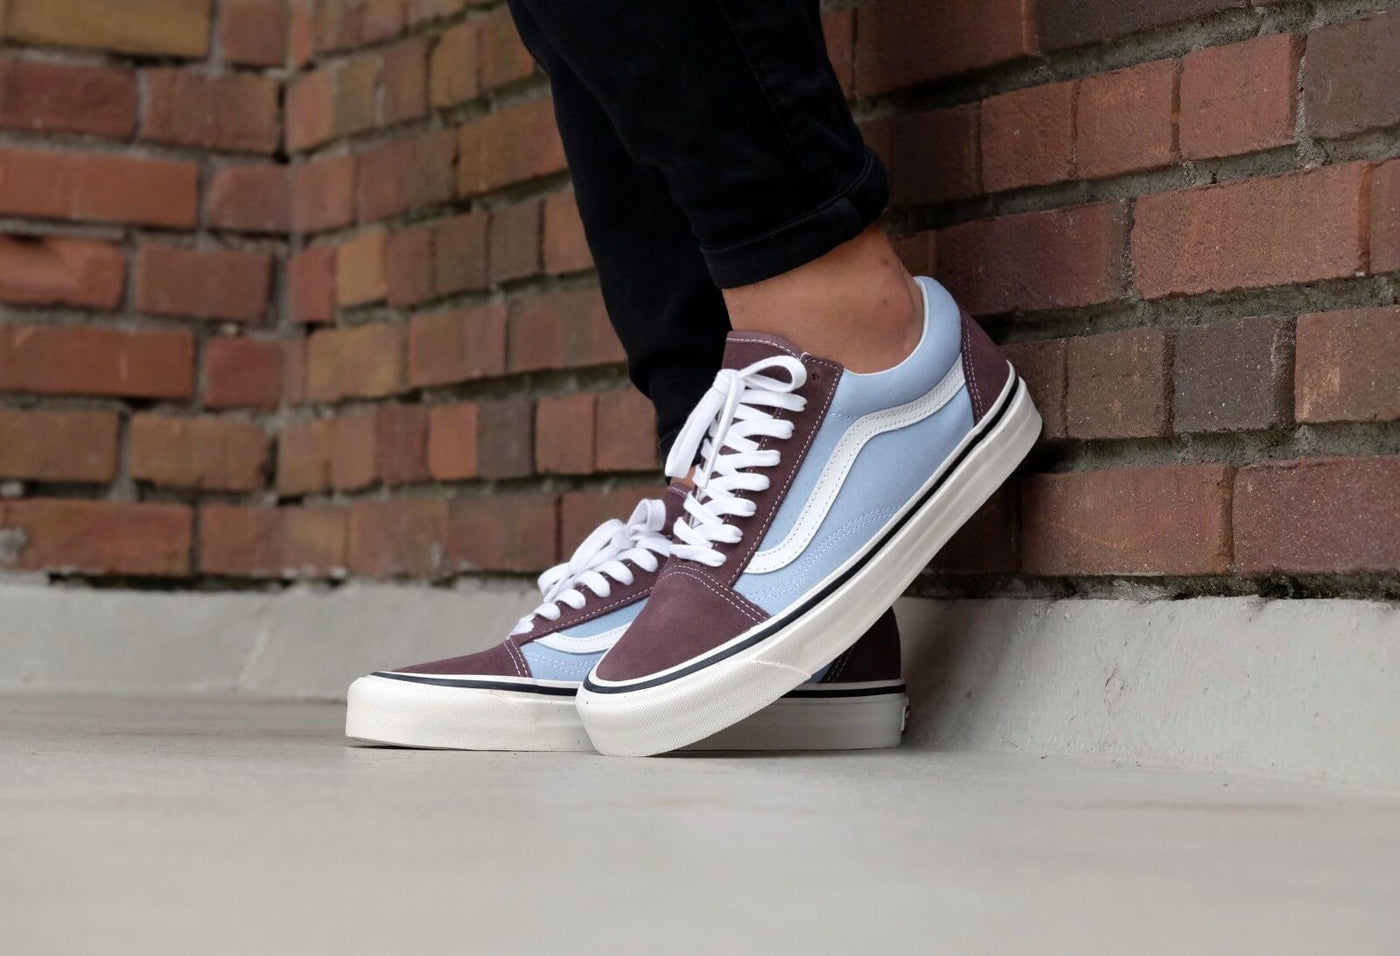 Shoe Laces Length Guide : How do I determine the length of my VANS sneaker  shoelaces